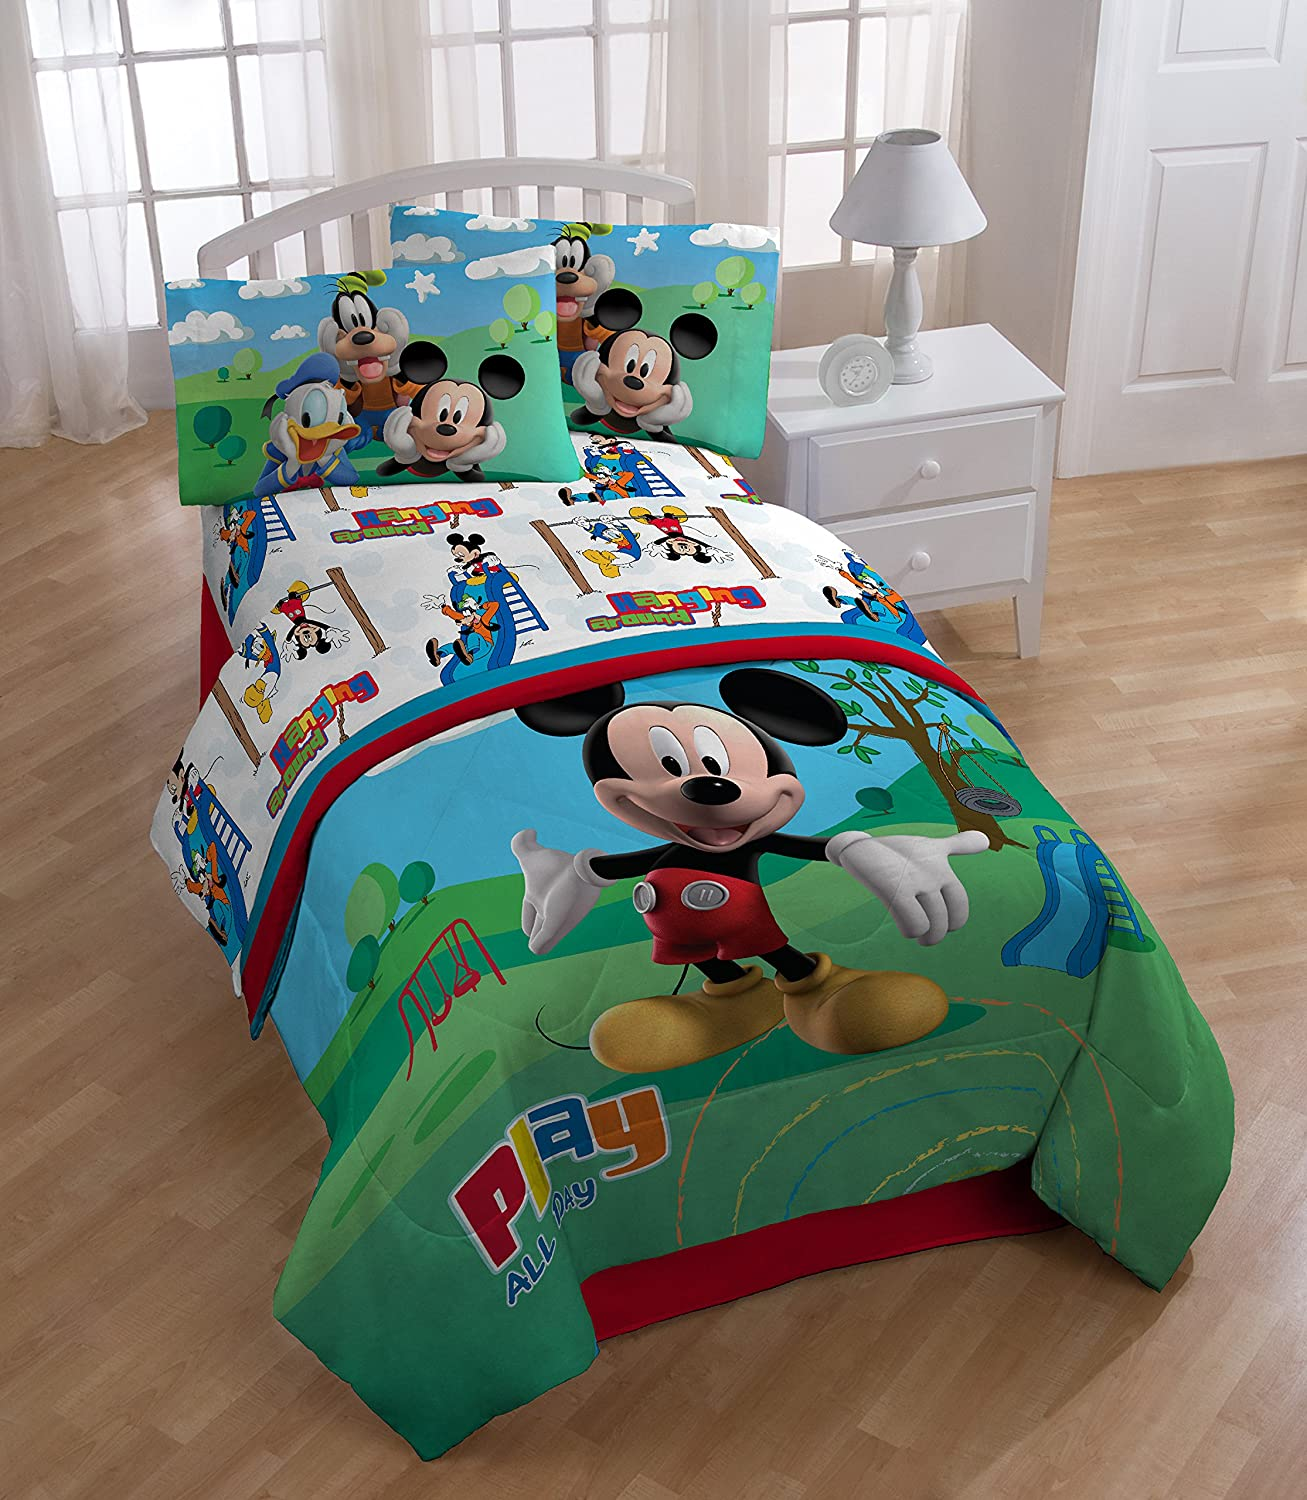 Amazon.com: Disney Mickey Mouse Club House \'Play\' Twin Comforter Set ...